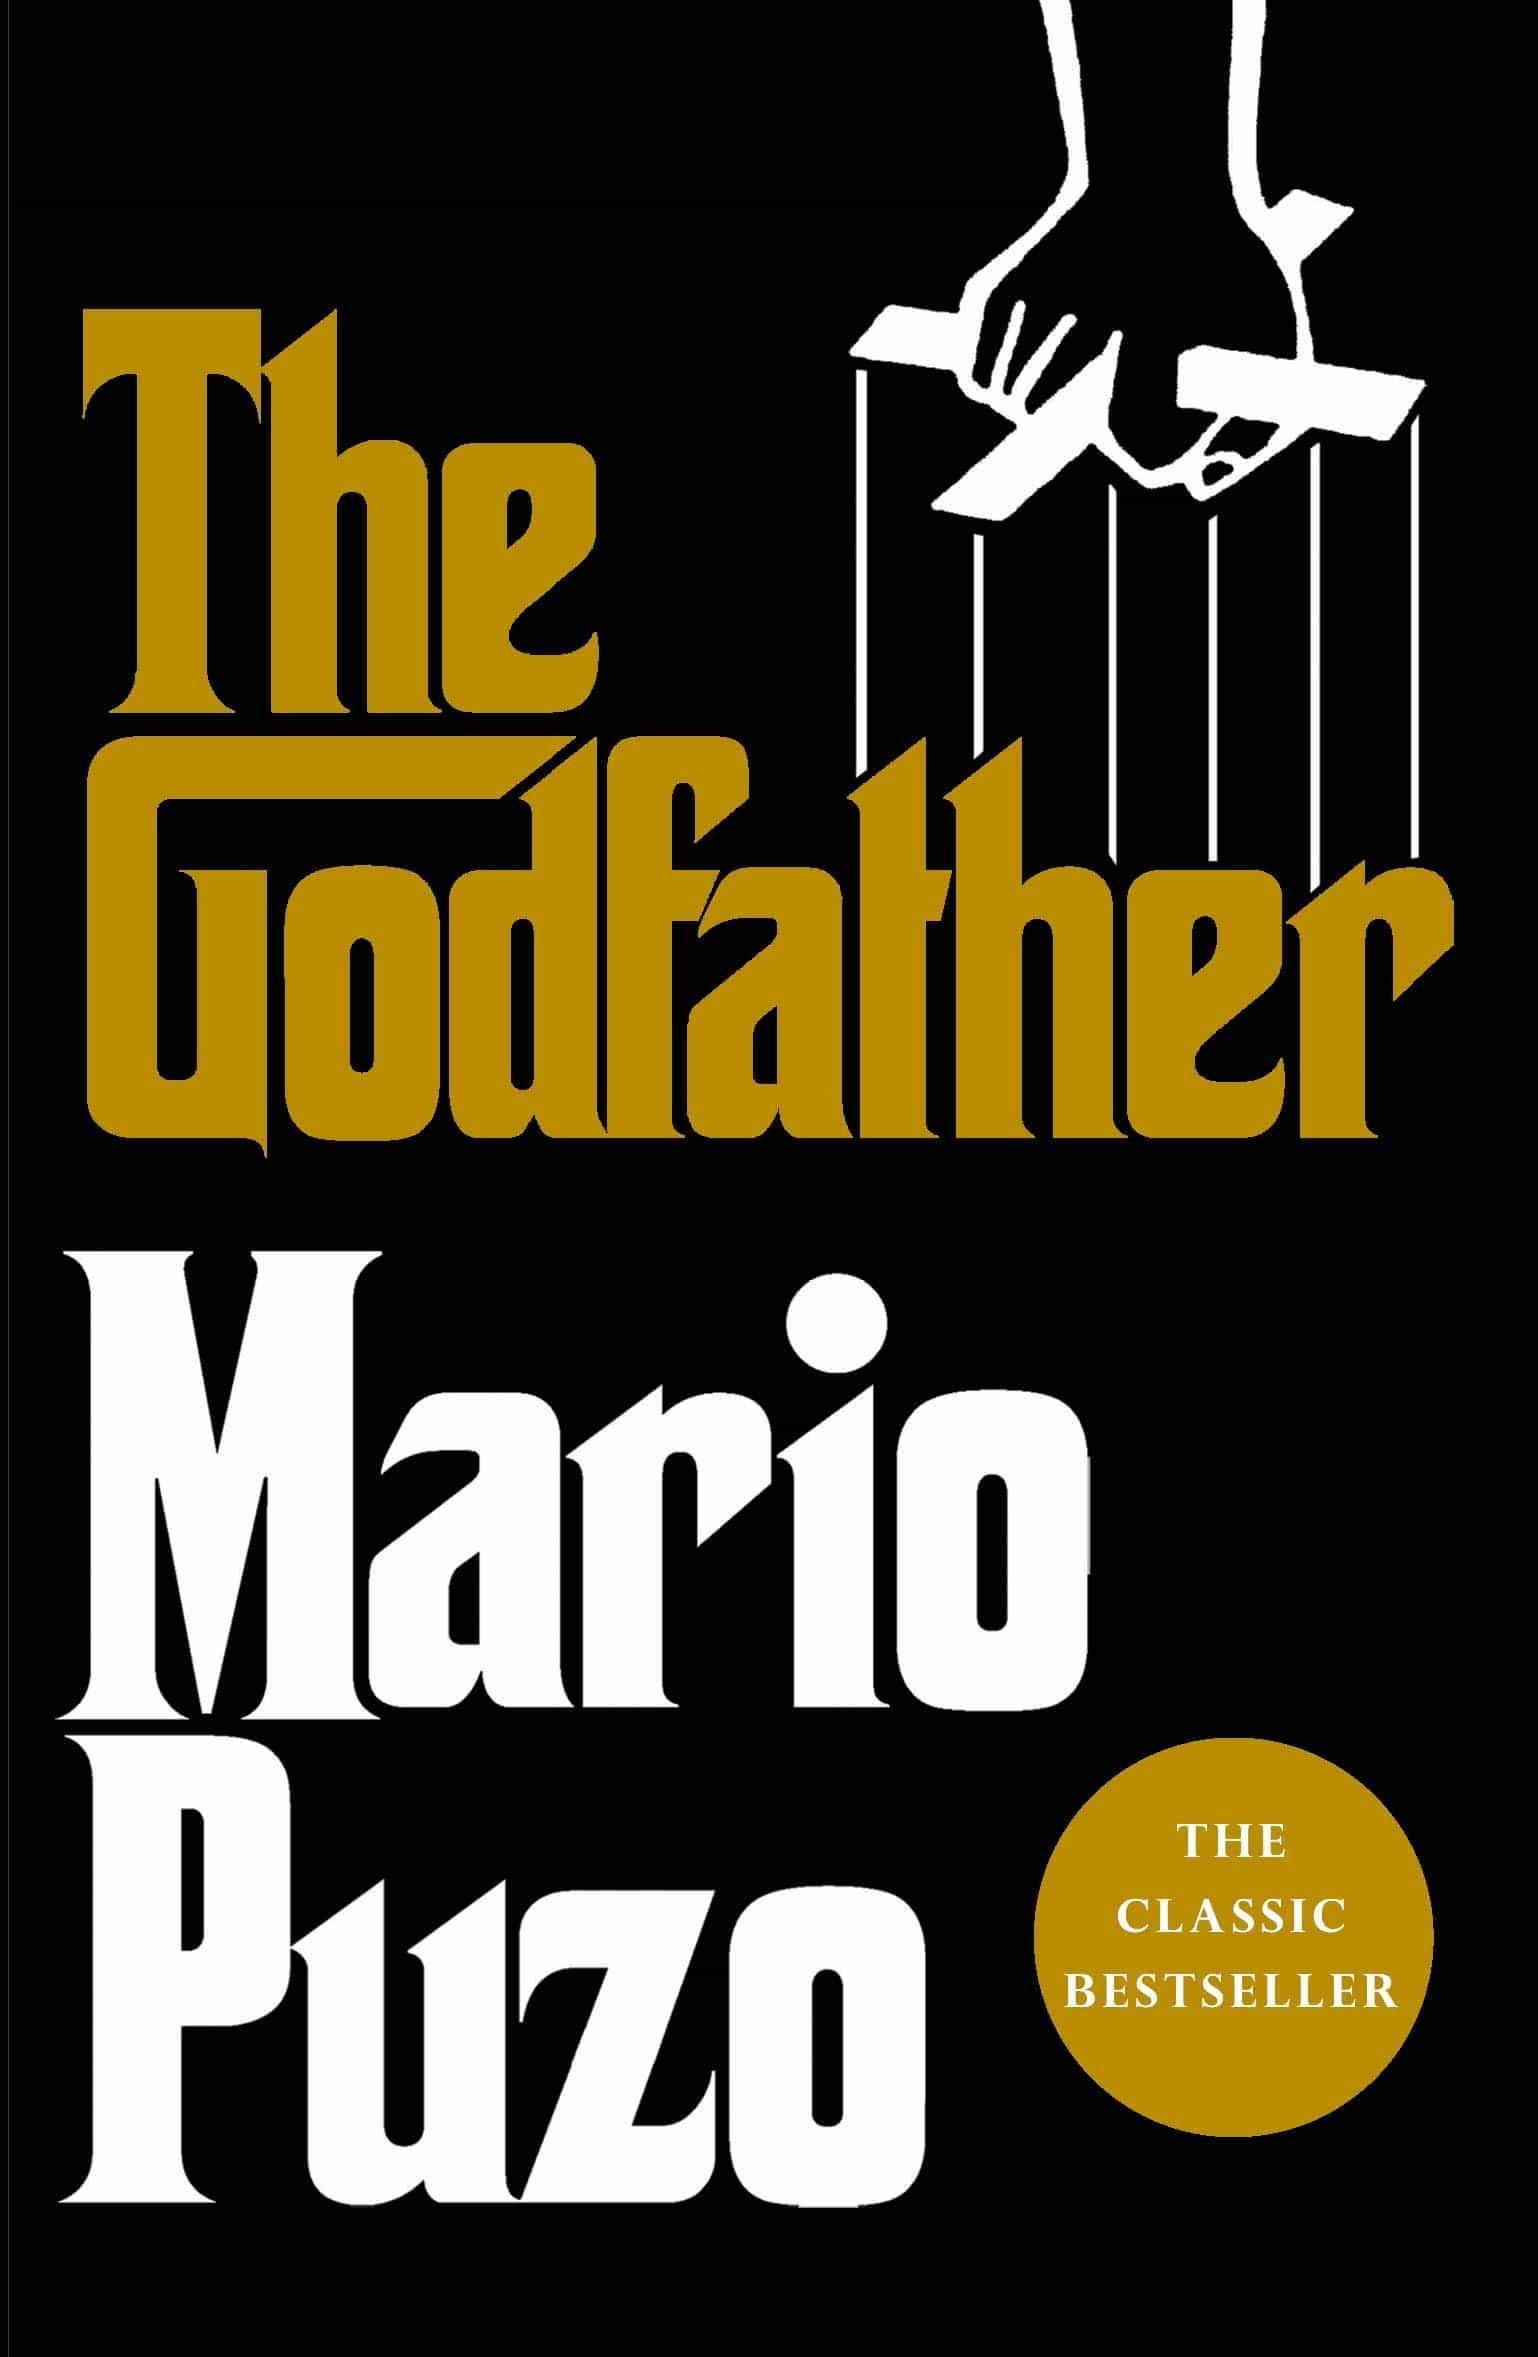 La Familia Corleone Libro The Godfather Ebook Puzo Mario Descargar Libro Pdf O Epub